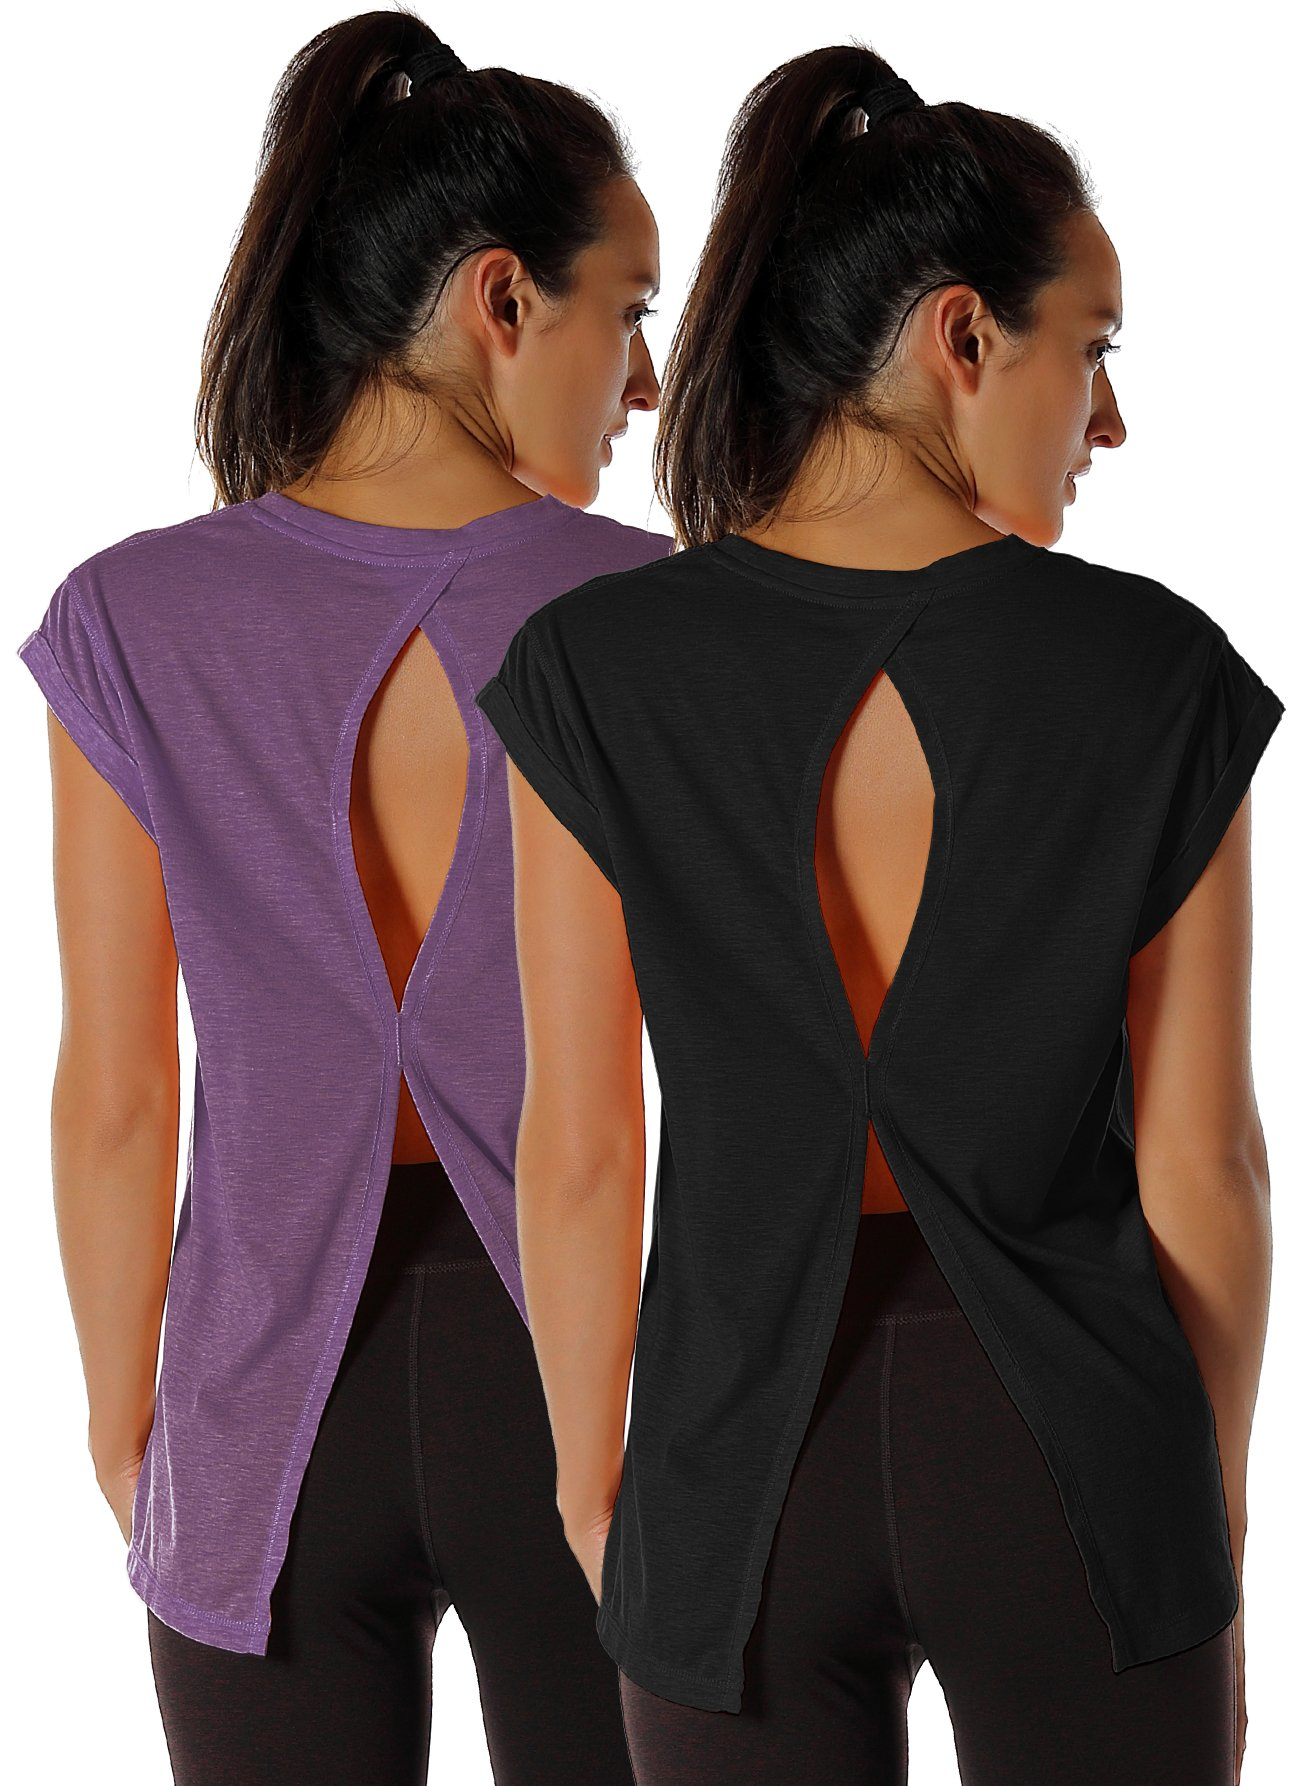 icyzone Open Back Workout Top Shirts - Yoga t-Shirts Activewear Exercise Tops for Women (M, Black/Grape)